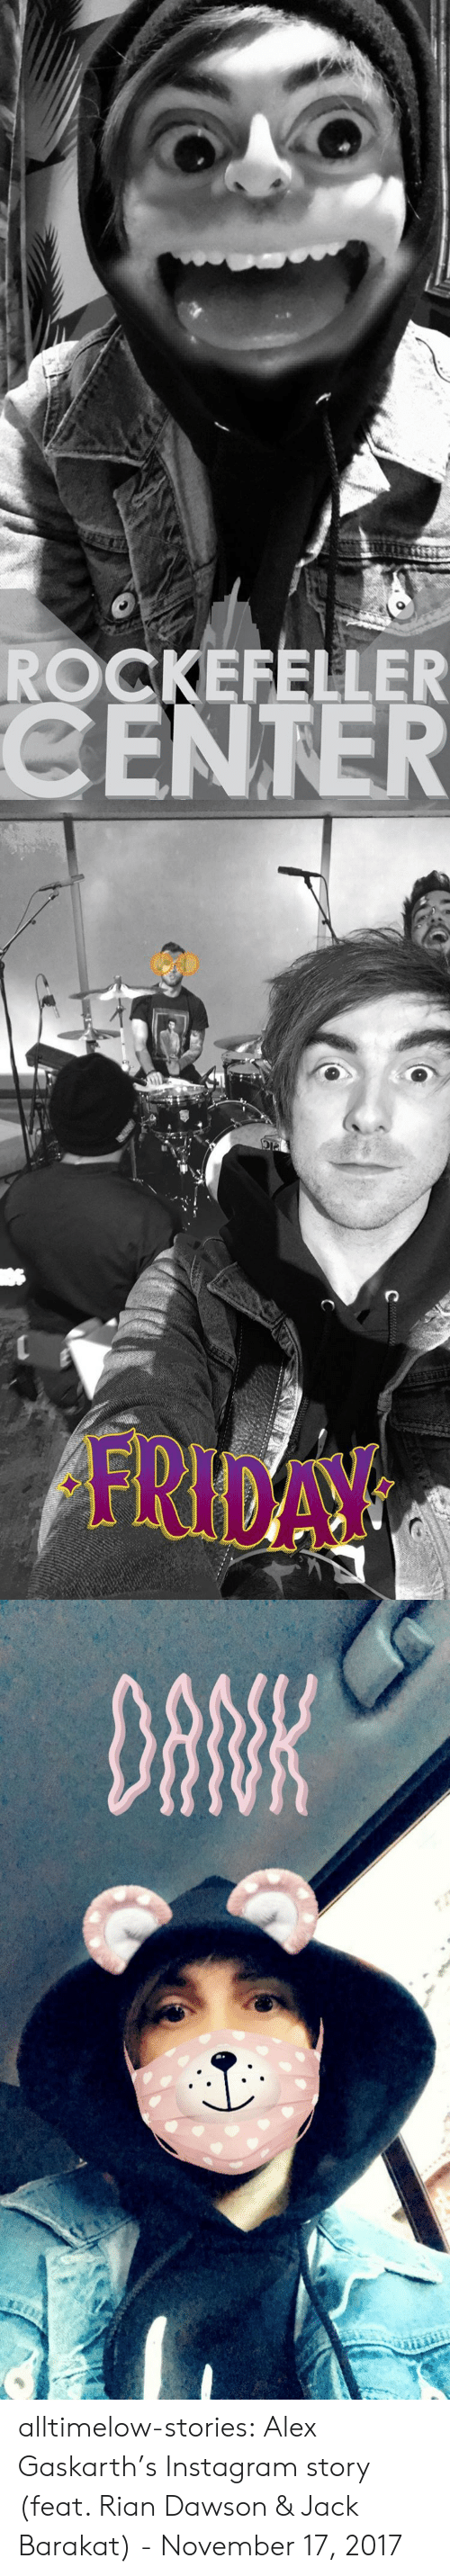 Dank, Friday, and Instagram: ROCKEFELLER  CENTER   FRIDAY   DANK alltimelow-stories:  Alex Gaskarth's Instagram story (feat. Rian Dawson & Jack Barakat) - November 17, 2017